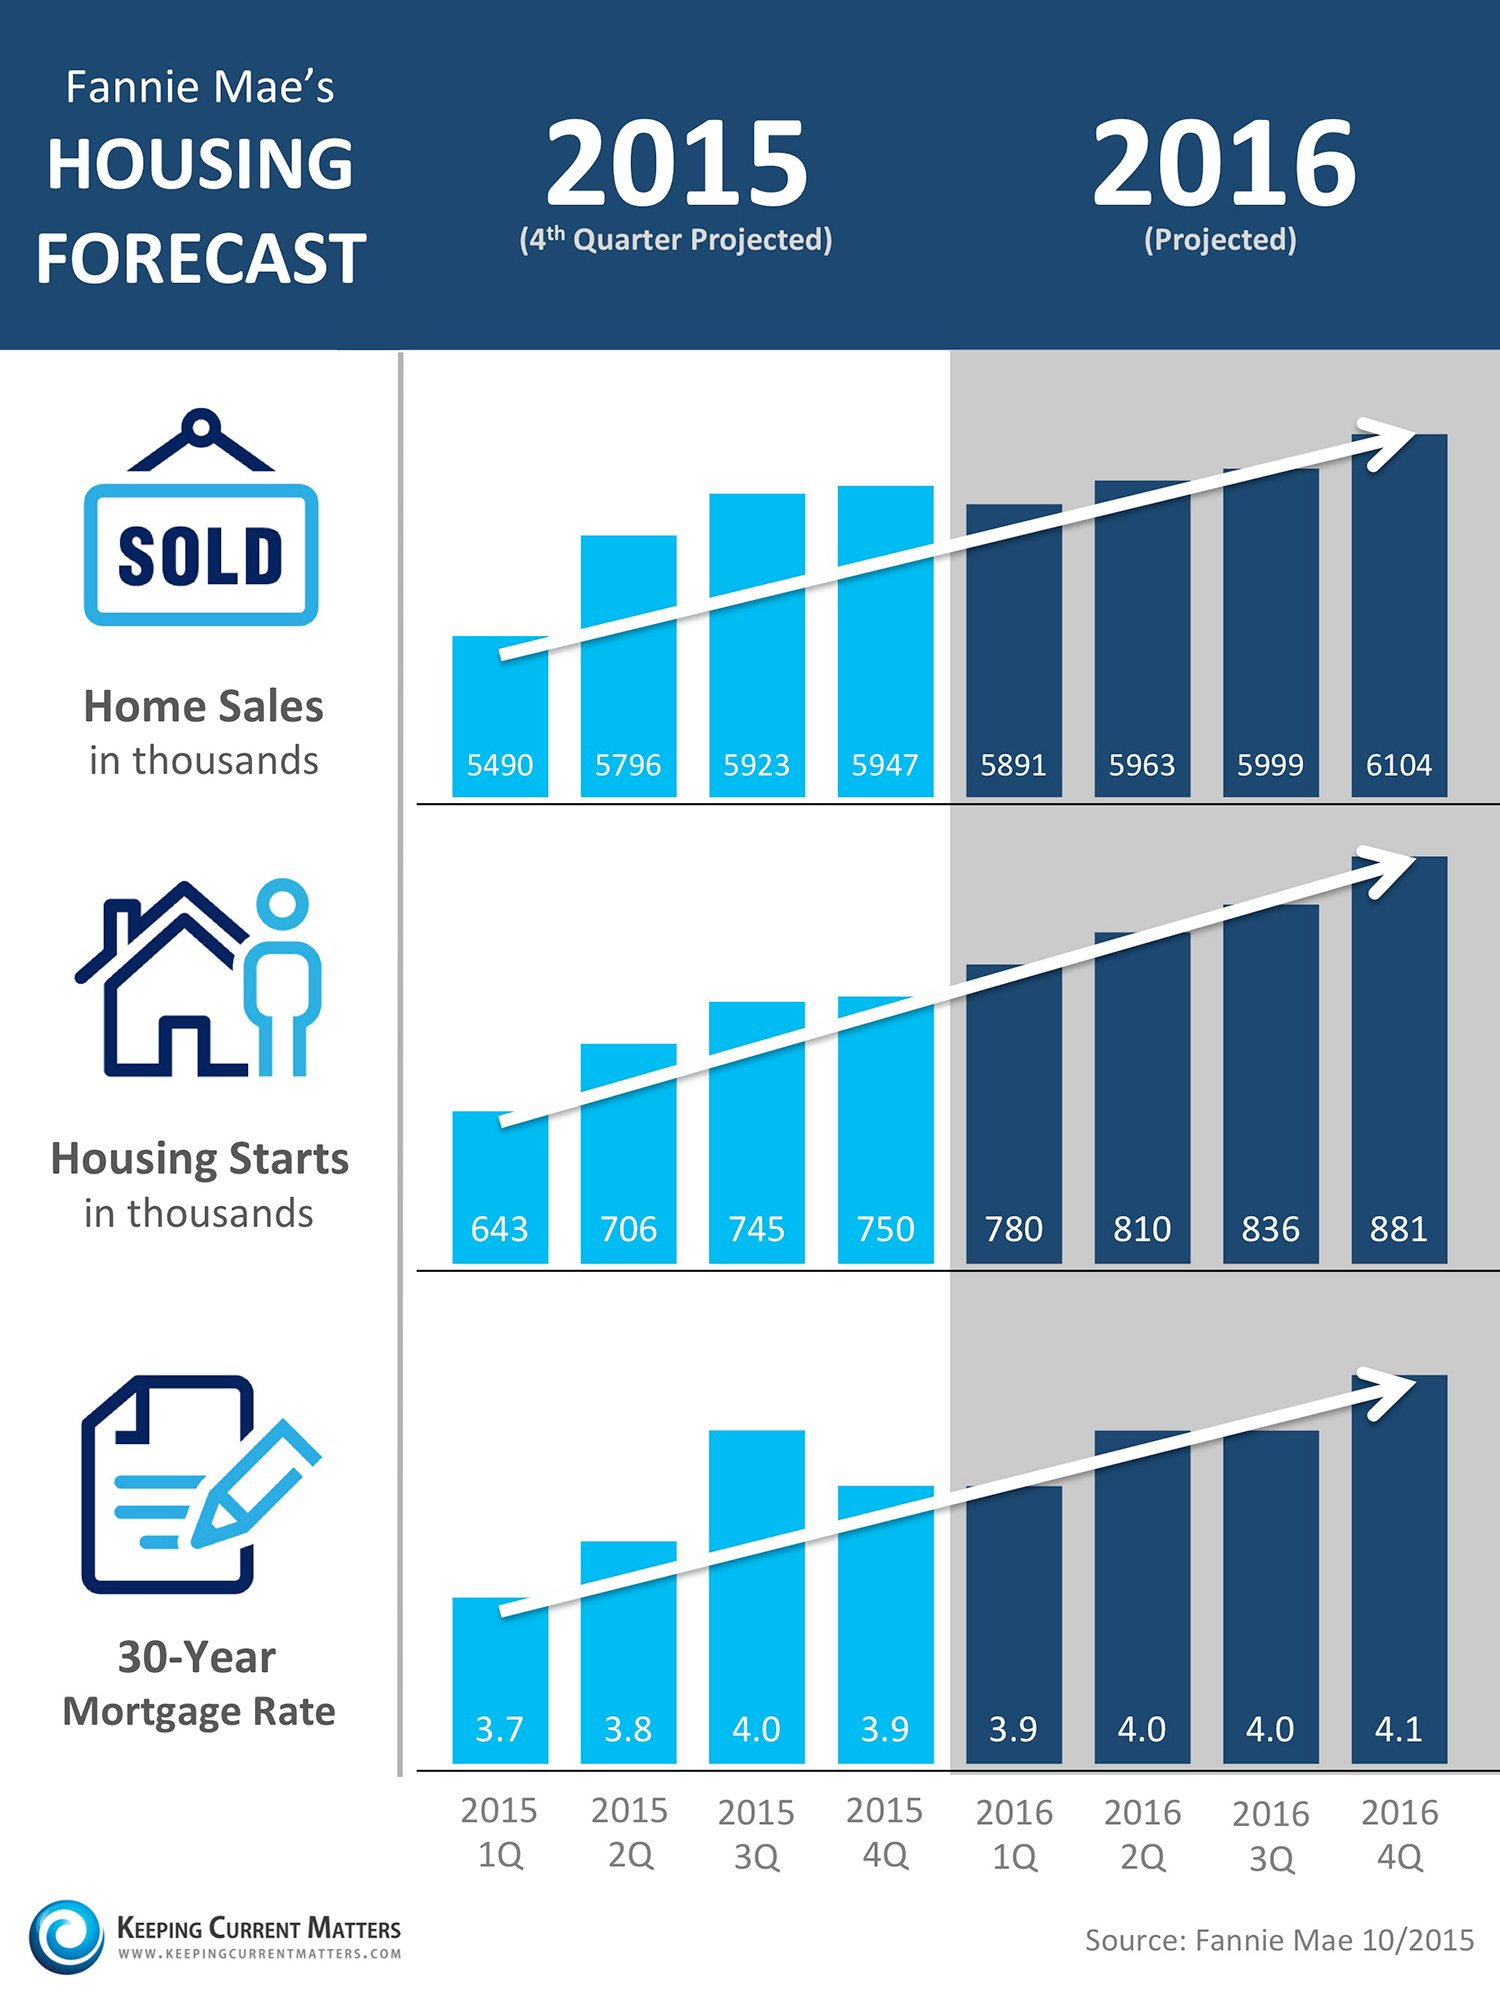 Fannie Mae Housing Market [INFOGRAPHIC] | Keeping Current Matters